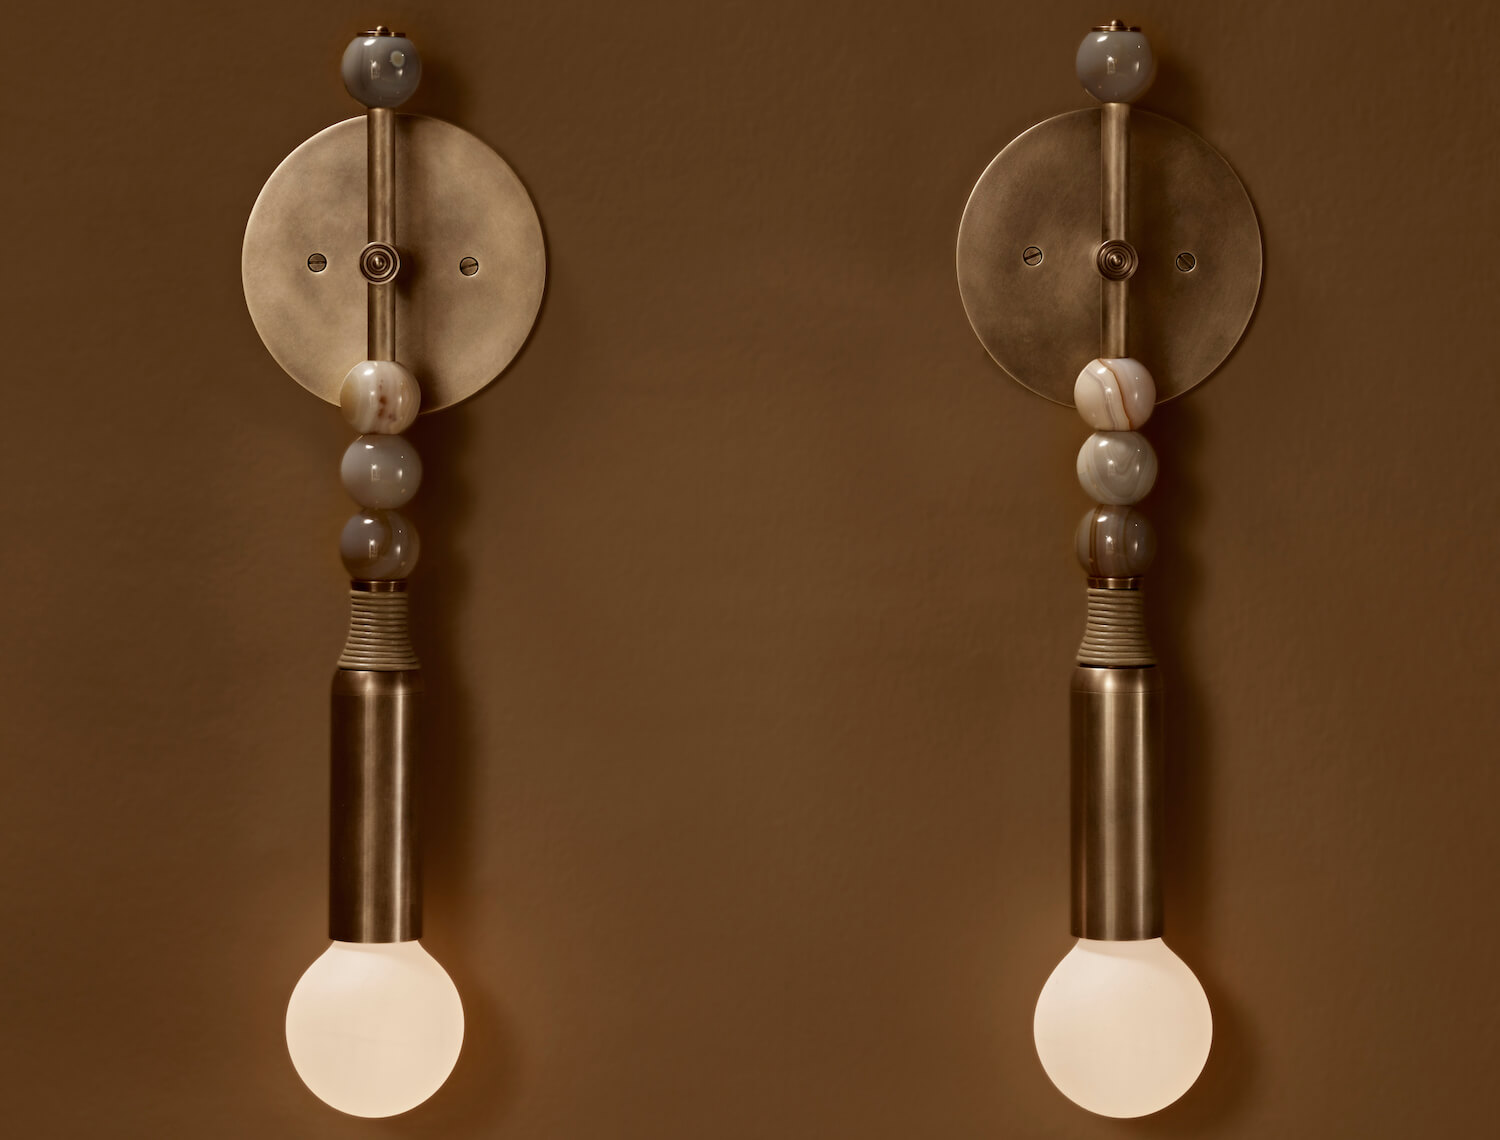 est living apparatus studio interview talisman wall light 4